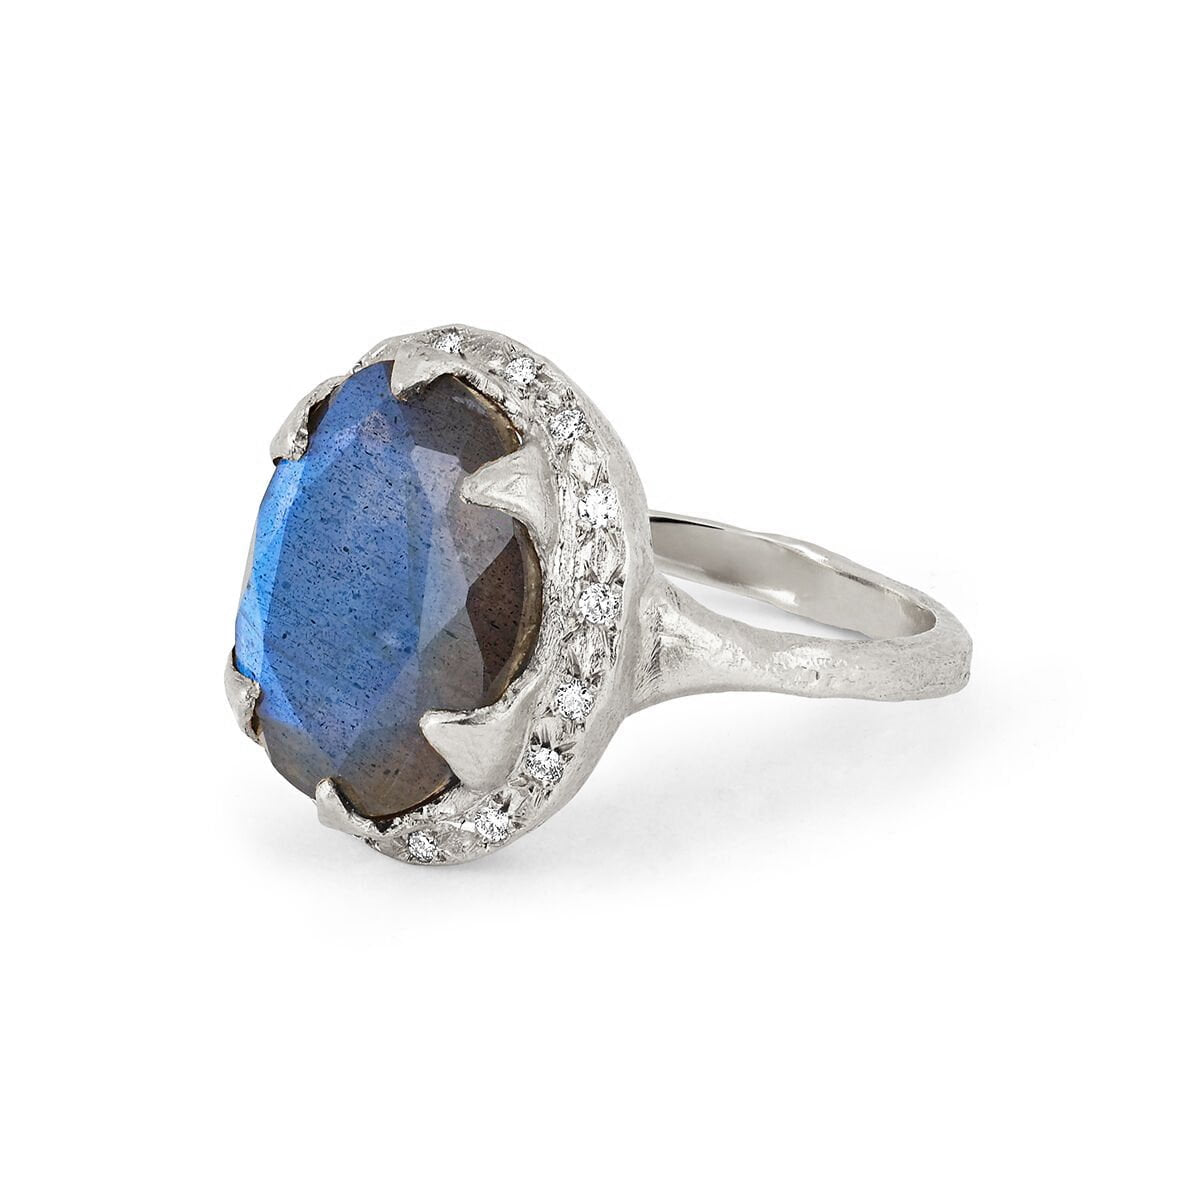 Queen Oval Labradorite Ring with Sprinkled Diamonds